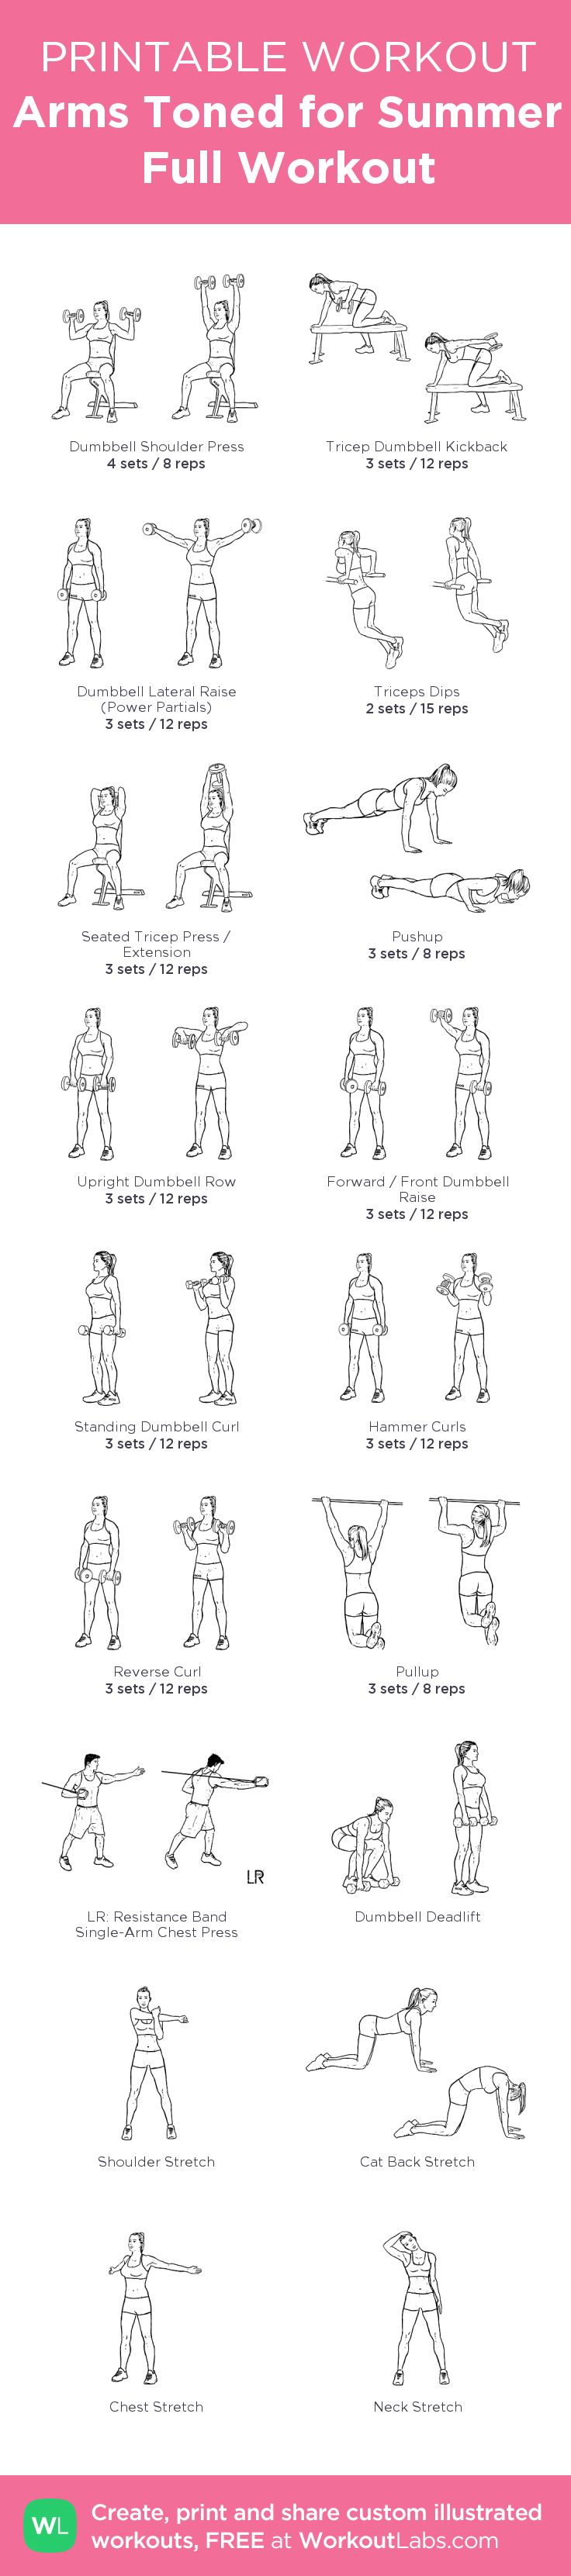 With 6 Triceps &shoulders workouts, followed by 6 Biceps &Back workouts…